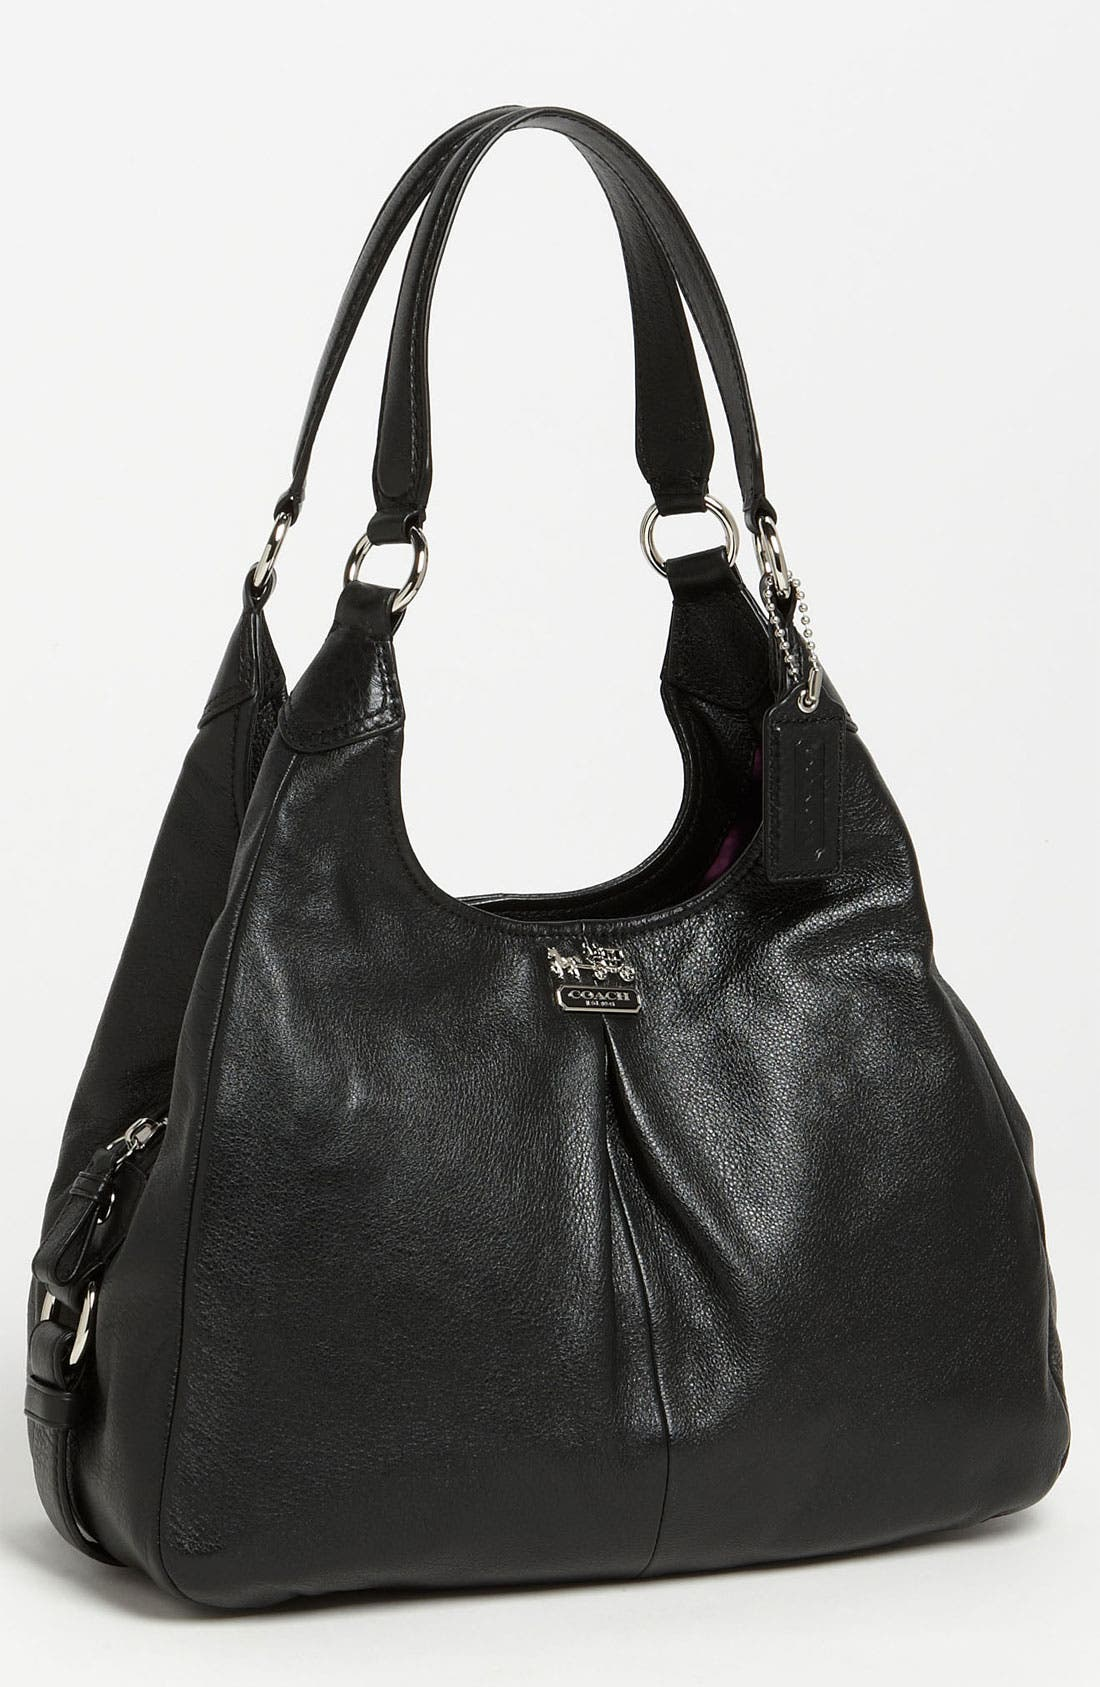 Main Image - COACH 'Madison - Maggie' Leather Hobo